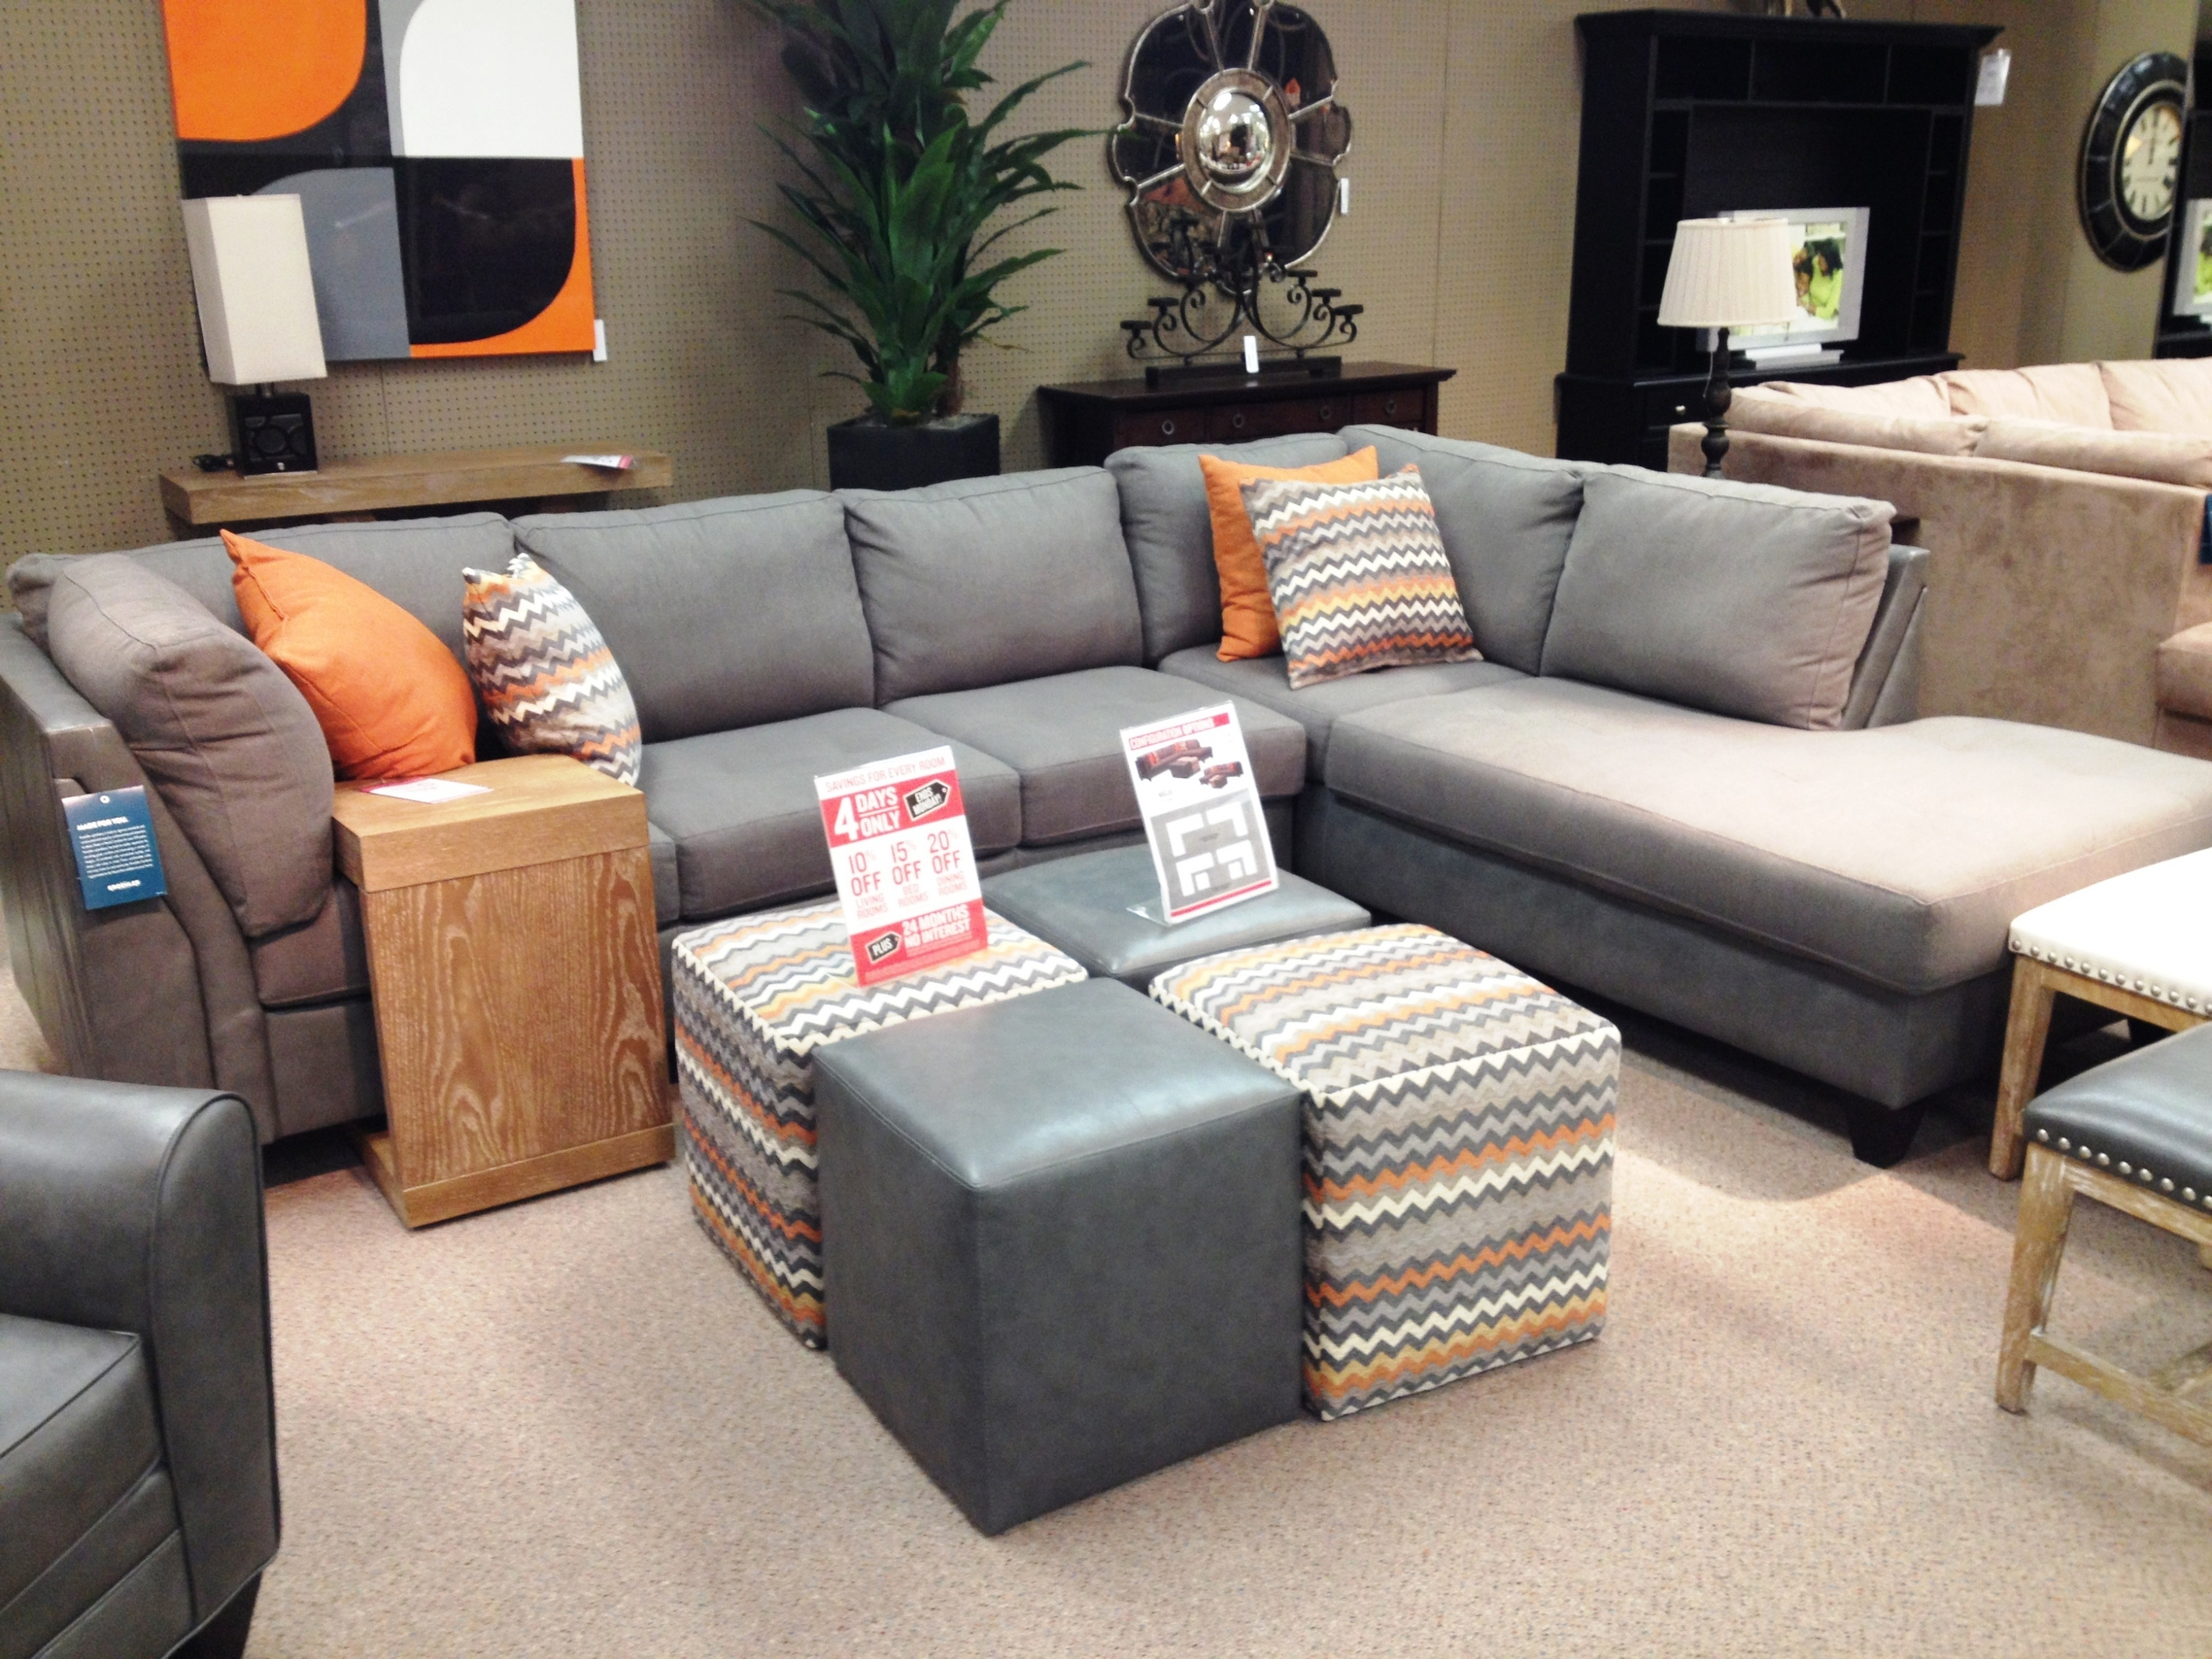 Sofa: The Sectional Sofa Saga | Mid Century Modern(Ization) Within Throughout Macys Sectional Sofas (Image 7 of 10)